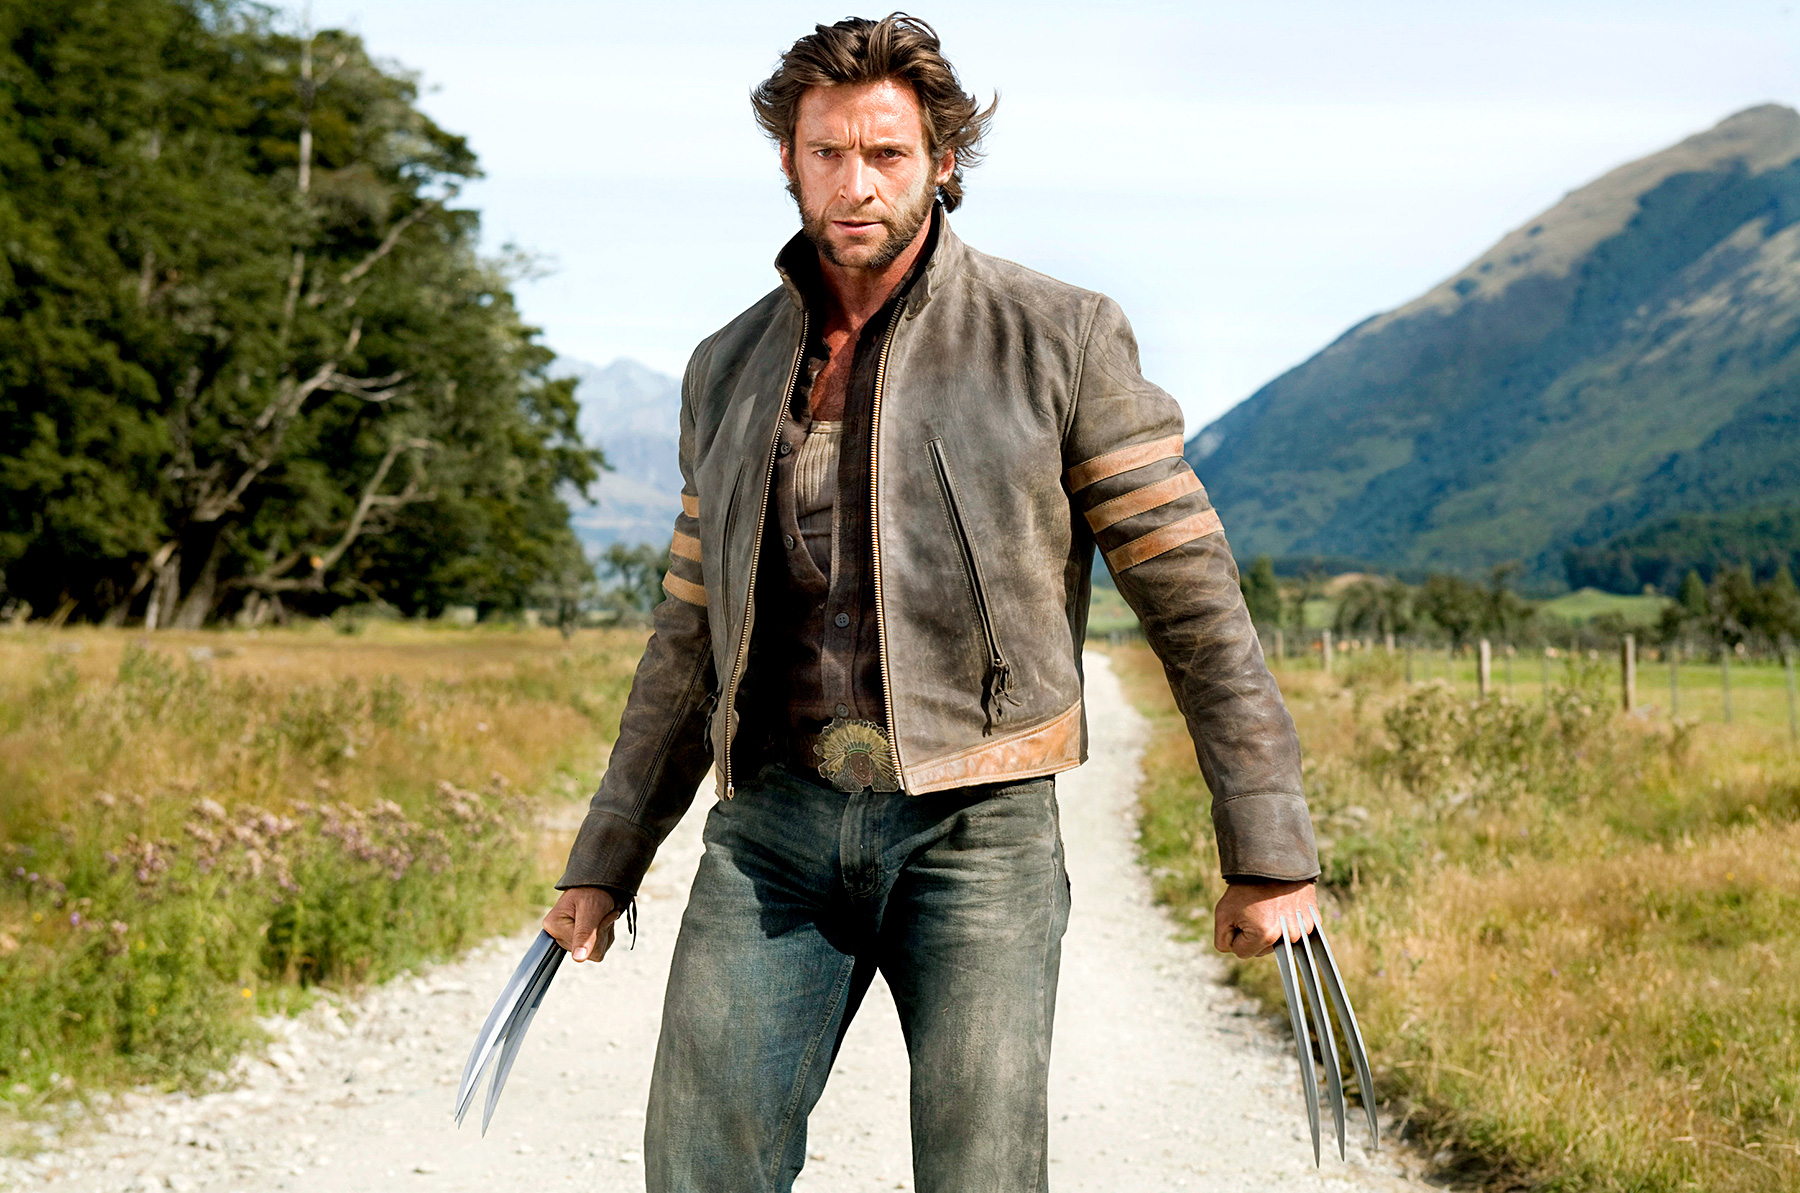 Hugh Jackman ate 6,000 calories a day to bulk up for his fifth stint as the X-Men's Wolverine in 2013's The Wolverine . He continued his role as the clawed crusader in 2014's X-Men: Days of Future Past .